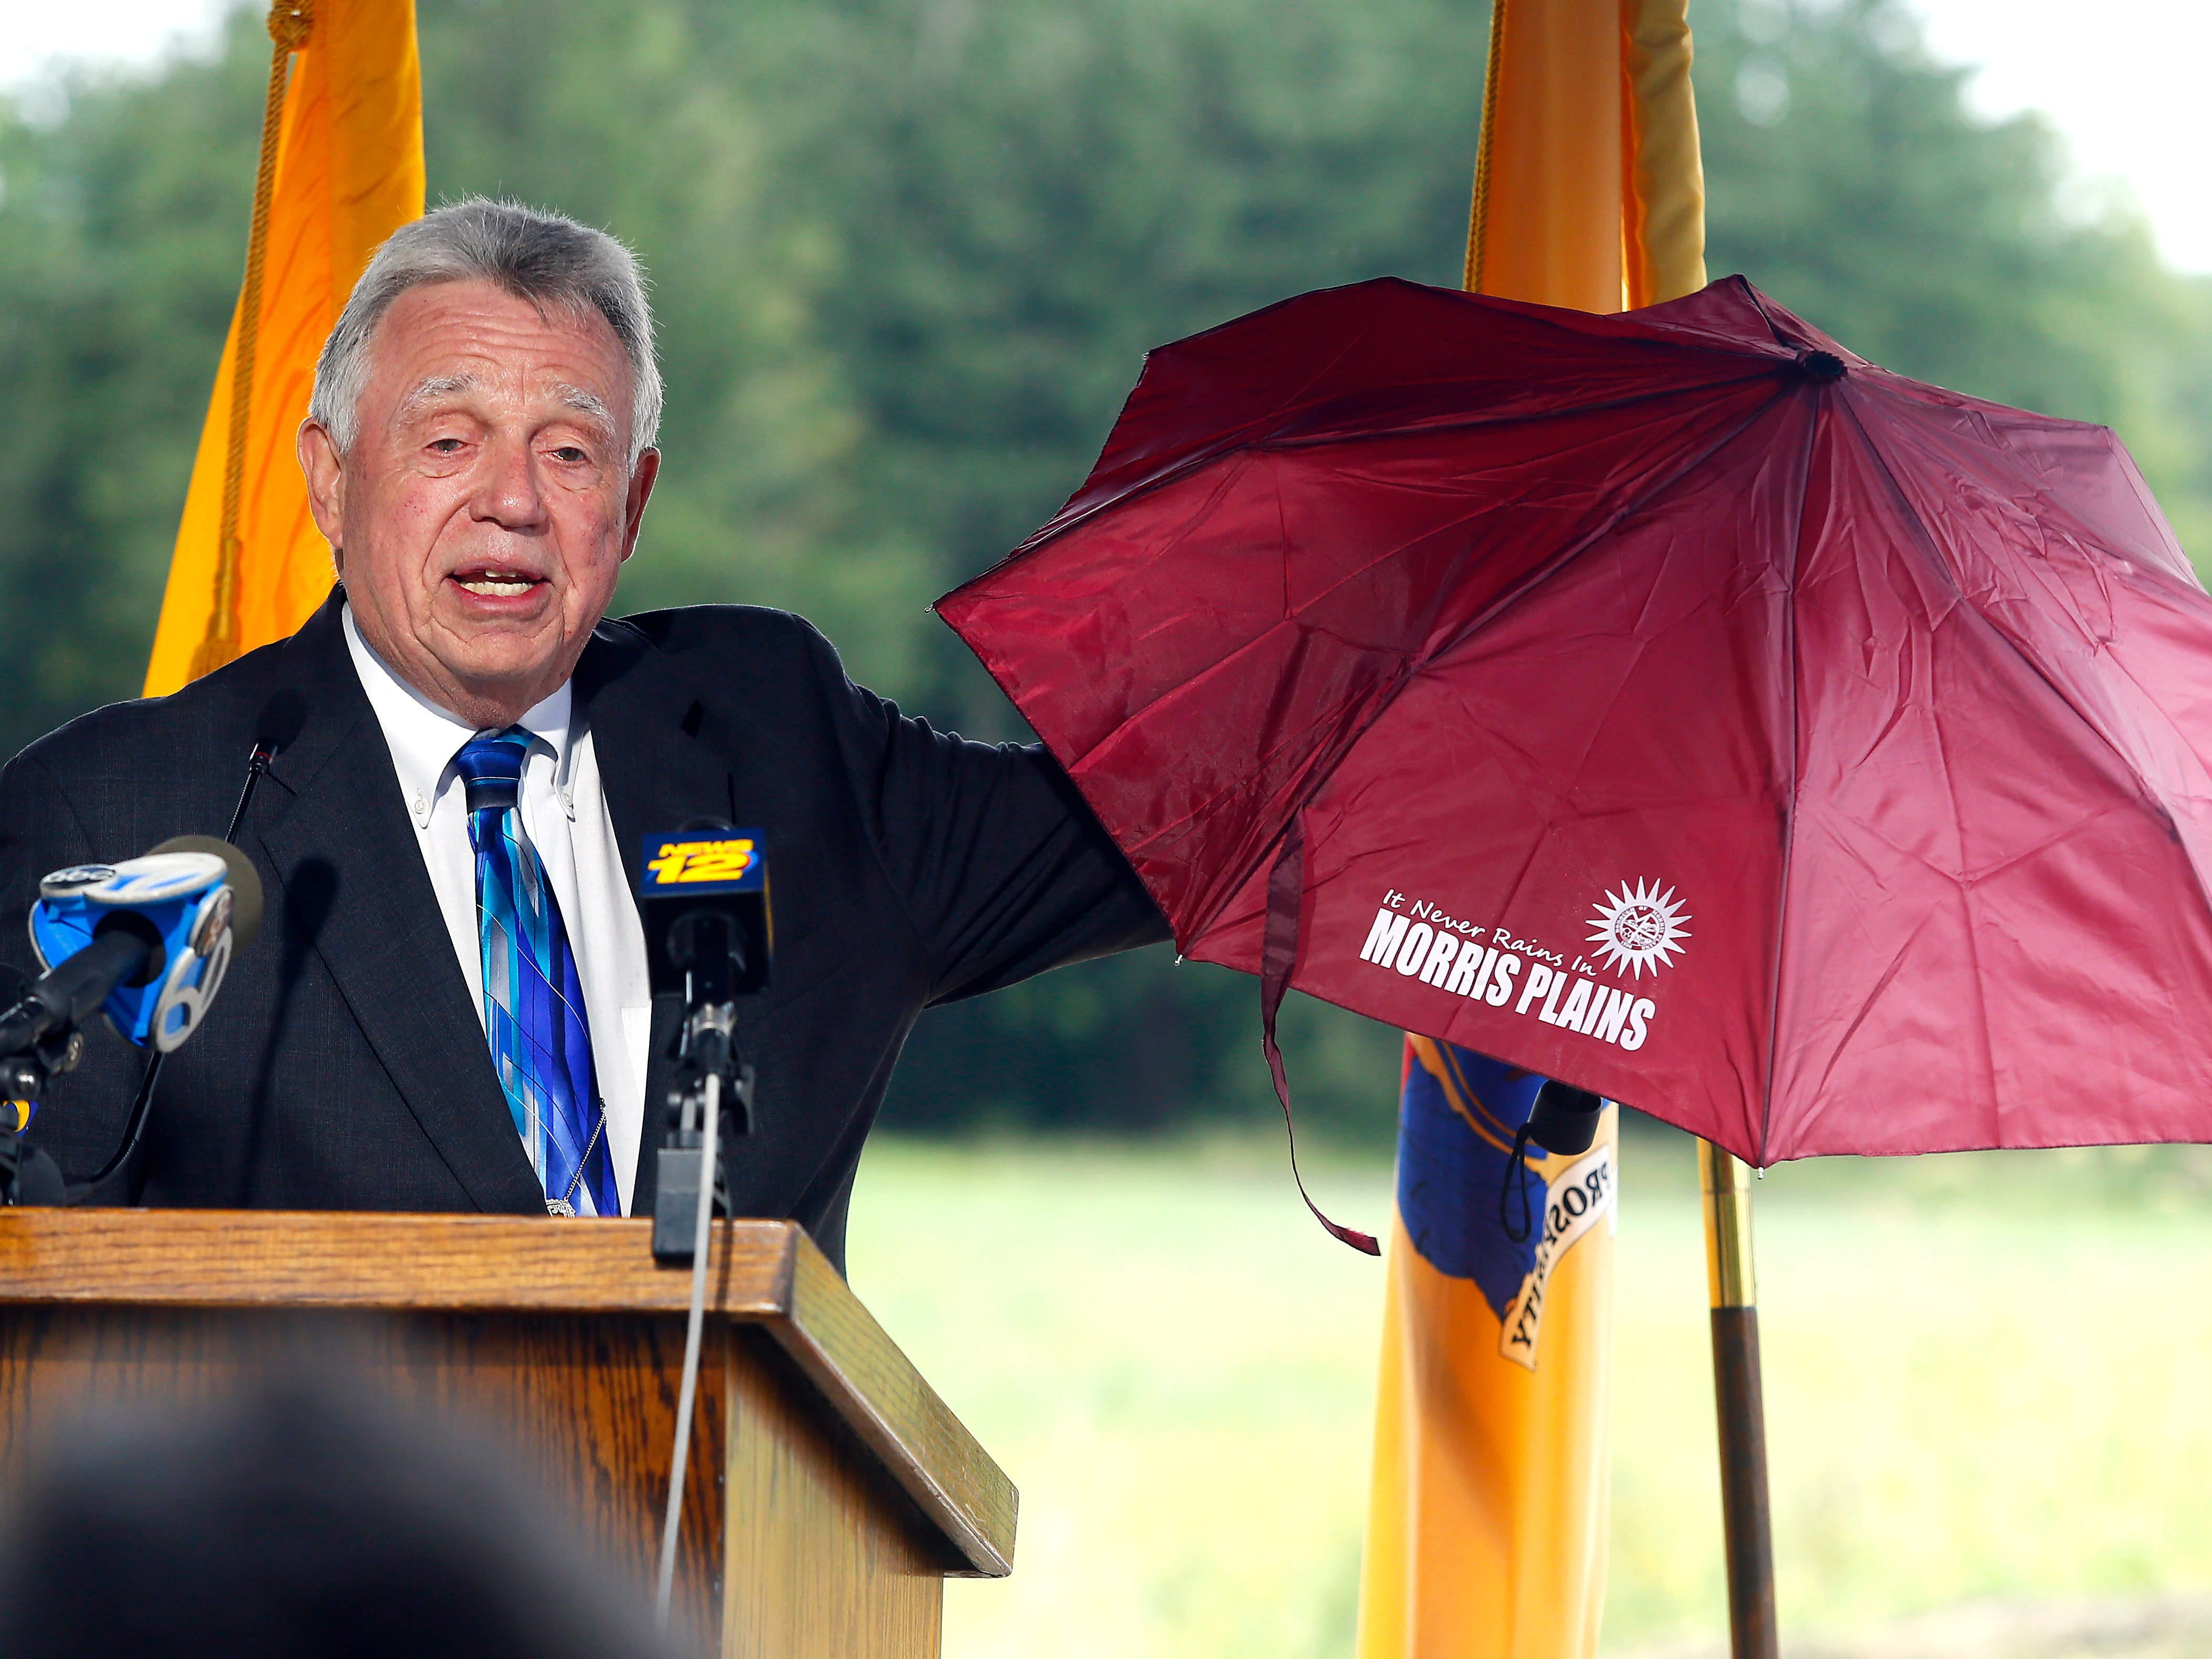 Morris Plains Mayor Frank Druetzler gifts an umbrella with his unofficial motto to former New Jersey Governor Chris Christie as Morris County freeholders formally open Gov. Chris Christie Drive, a new main access road to Central Park of Morris County. September 12, 2018, Morris Plains, NJ